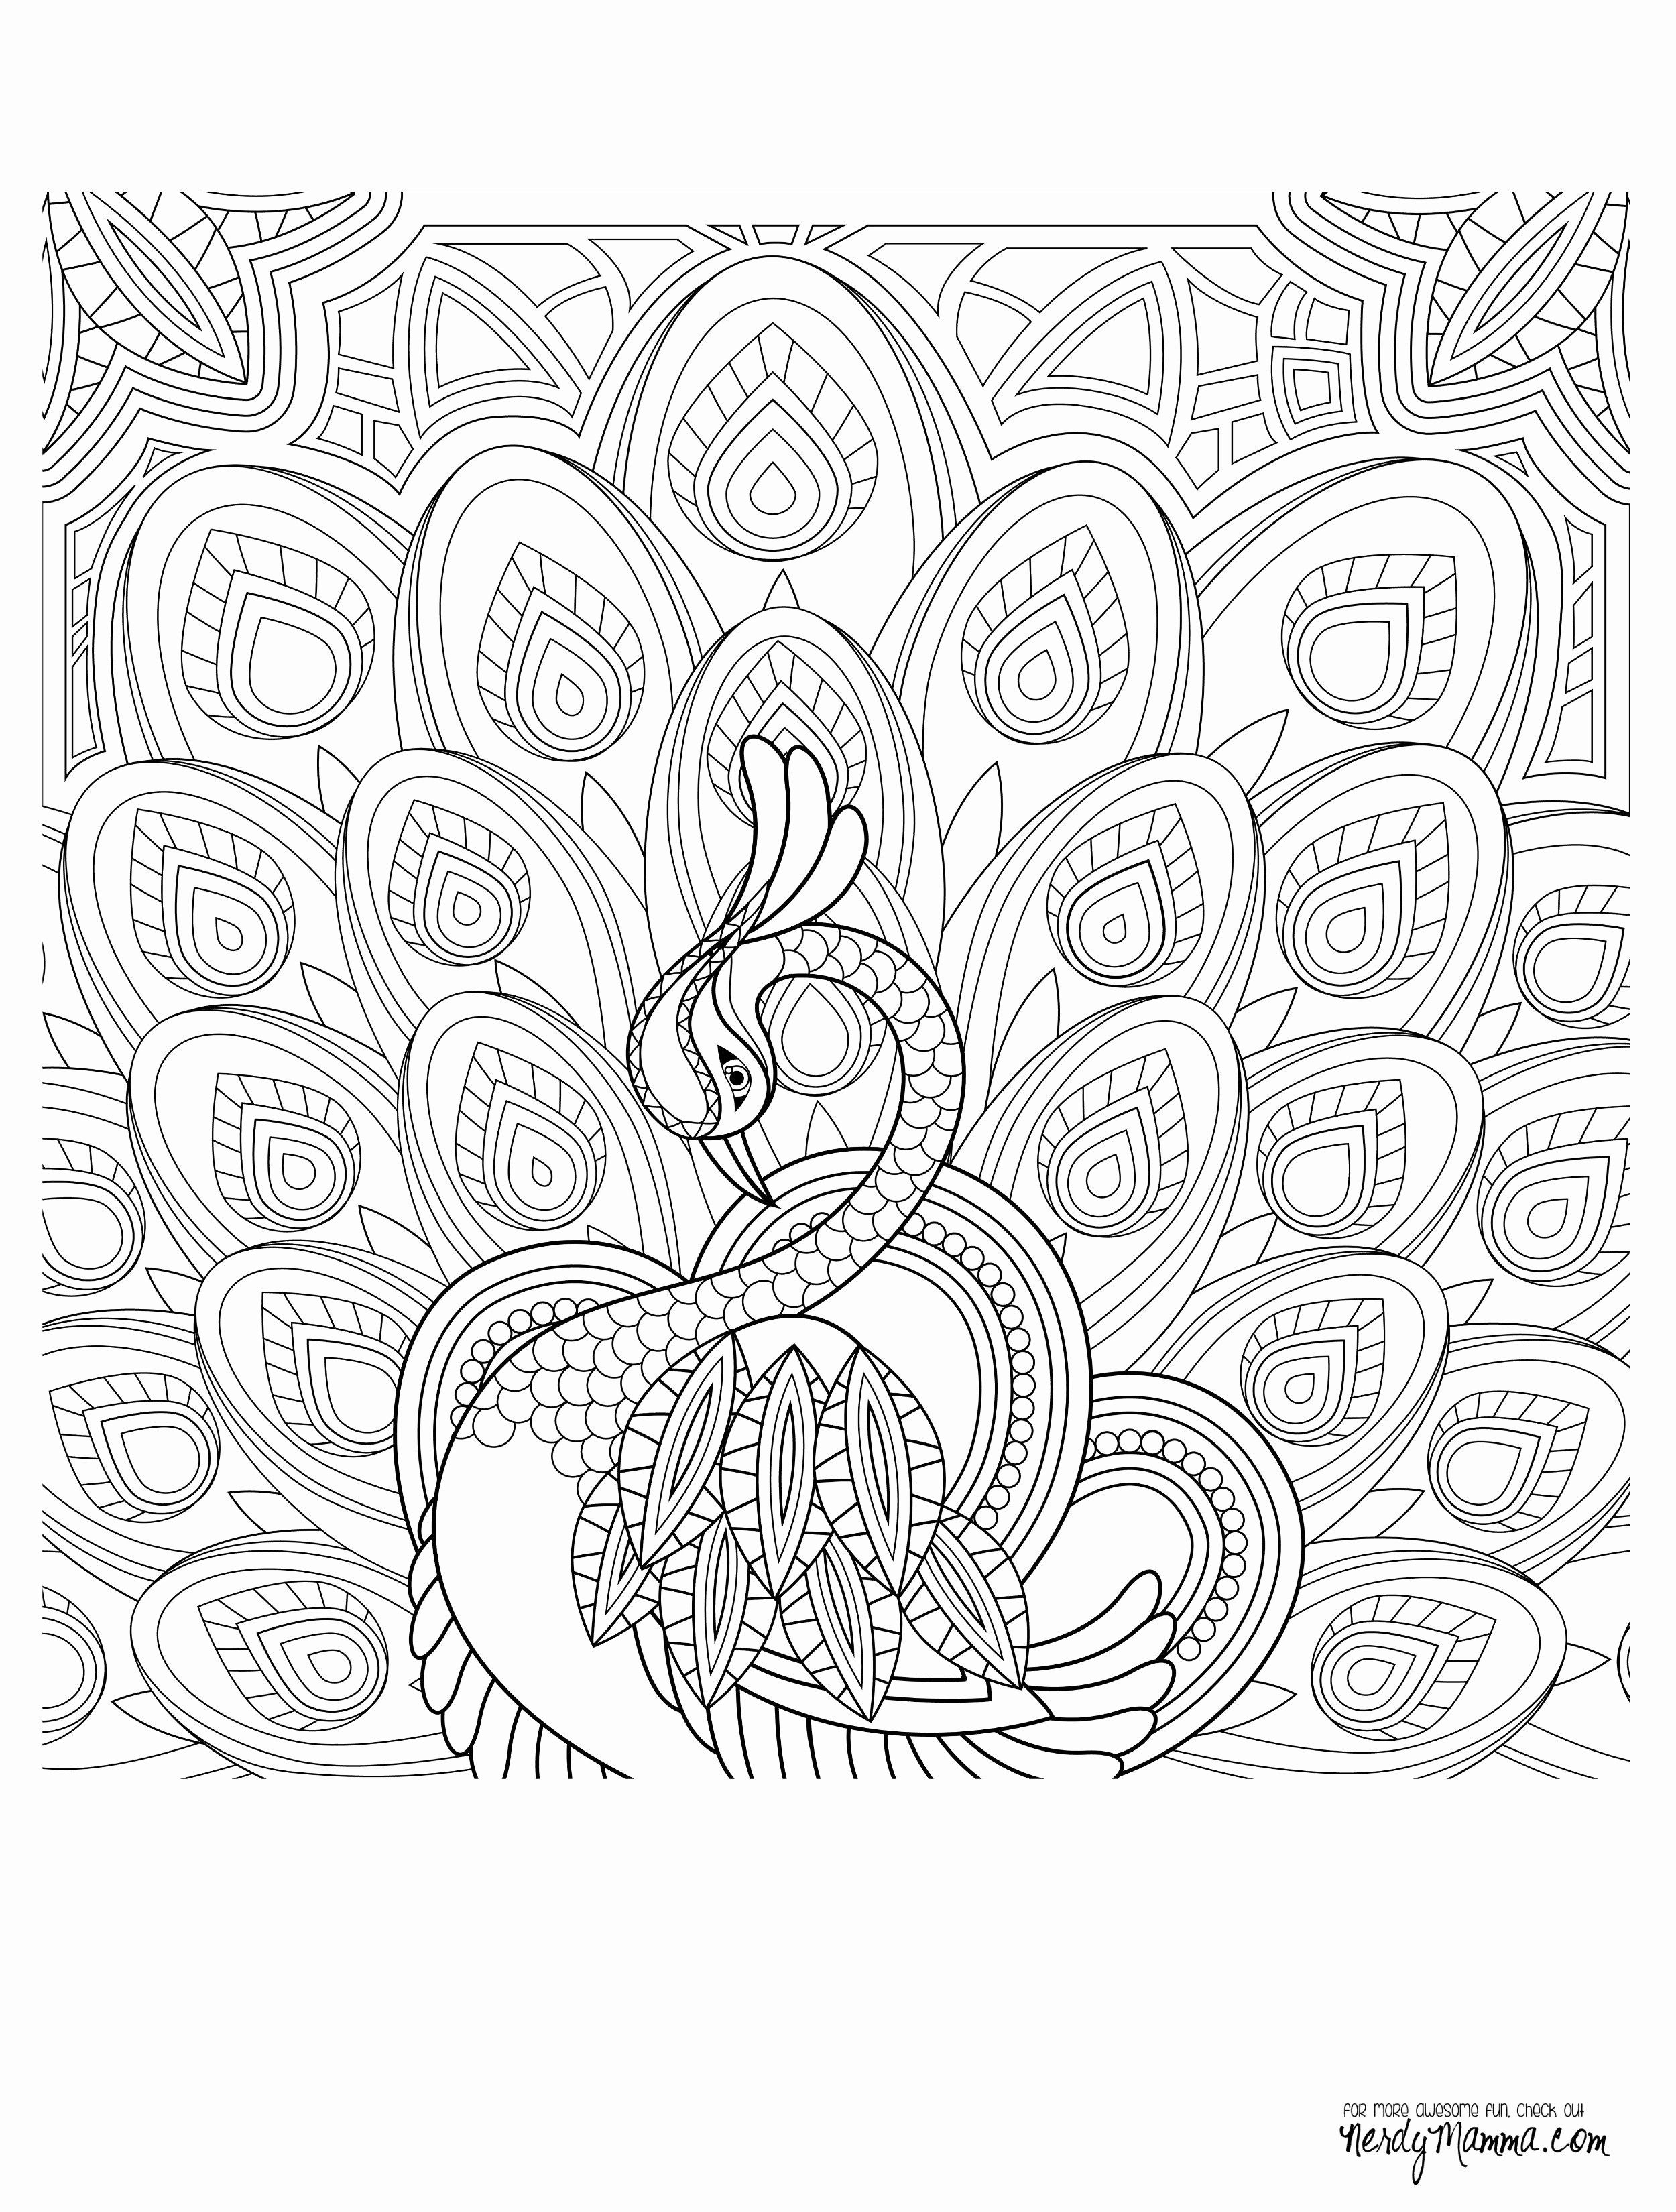 Dover Publications Coloring Pages  Download 14m - Save it to your computer